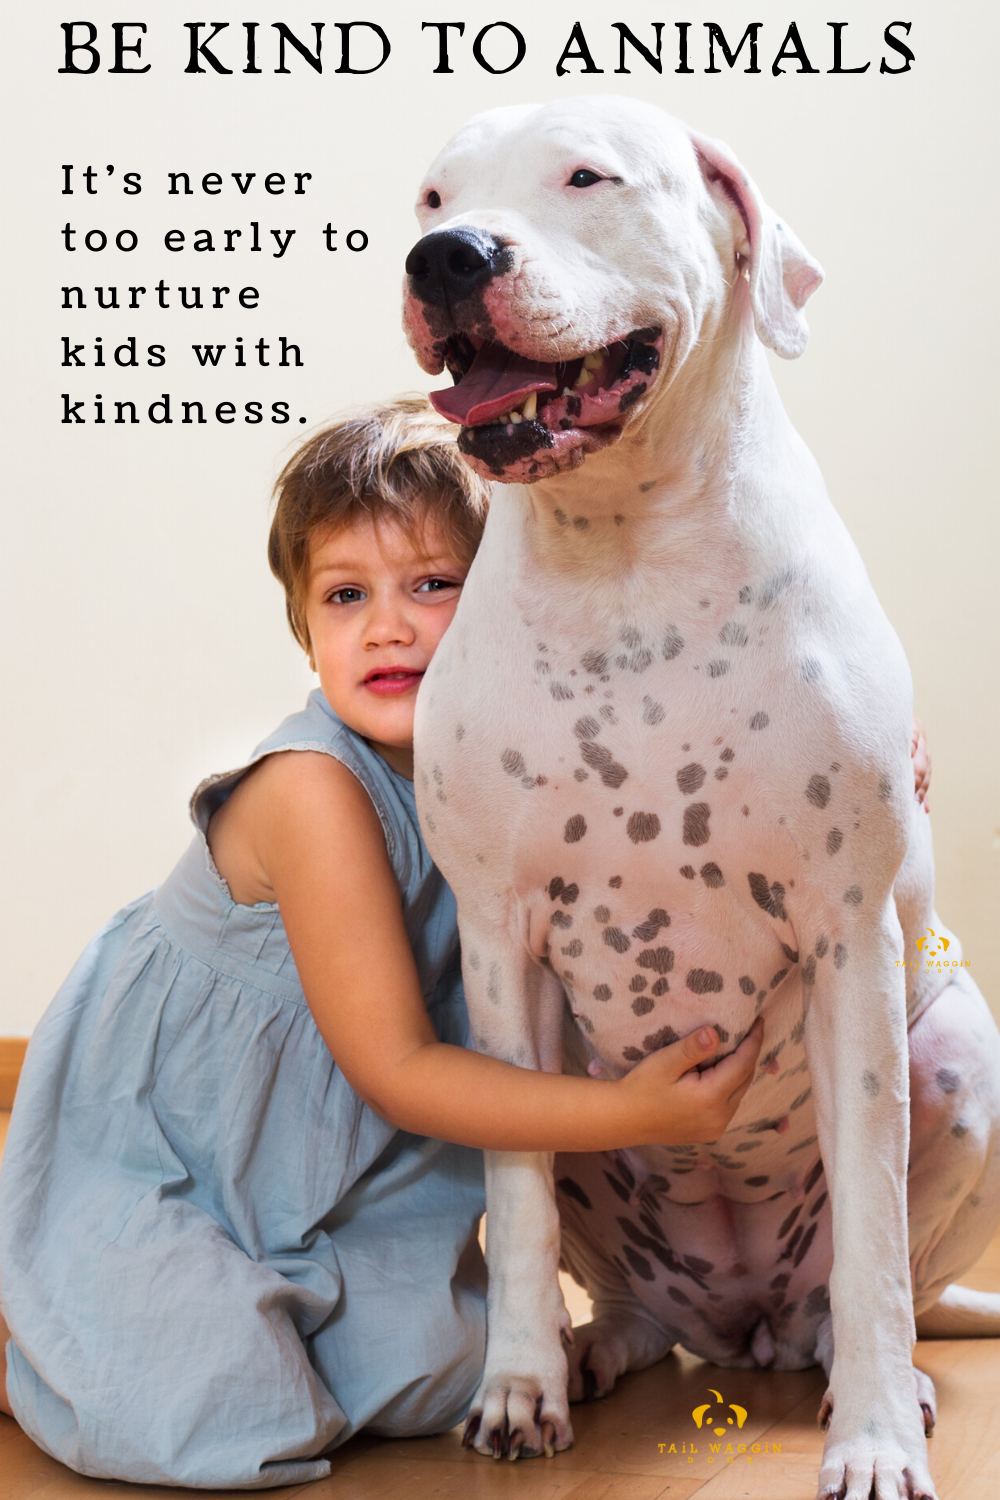 It takes nothing away from a human to be kind to animals.   #BeKindToAnimalsWeek #nationalpetmonth #animallover #doglover